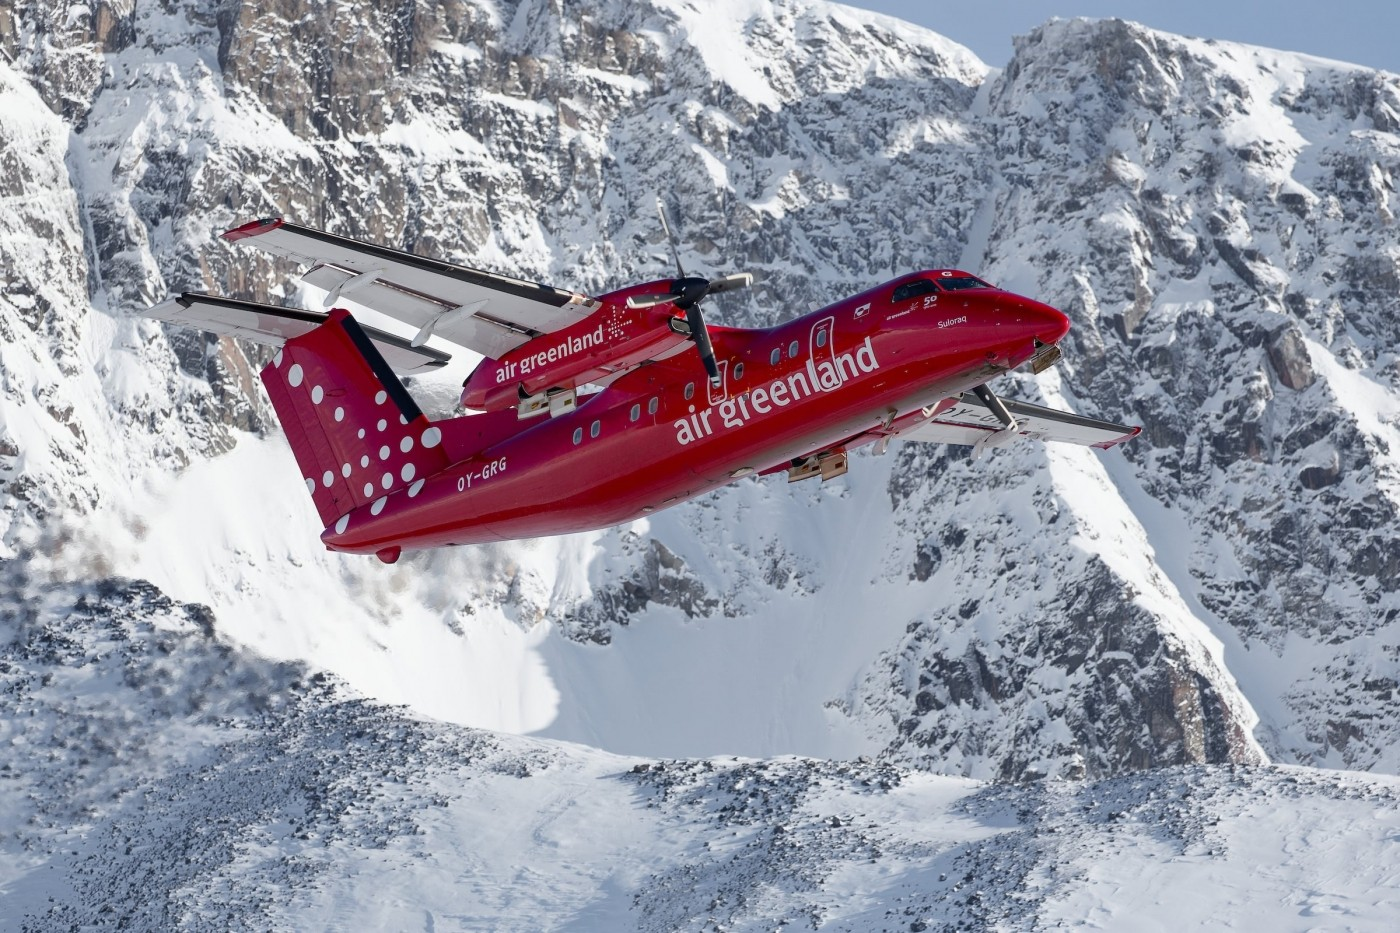 An Air Greenland Dash-8 taking off from Kulusuk in East Greenland. Photo by Mads Pihl - Visit Greenland